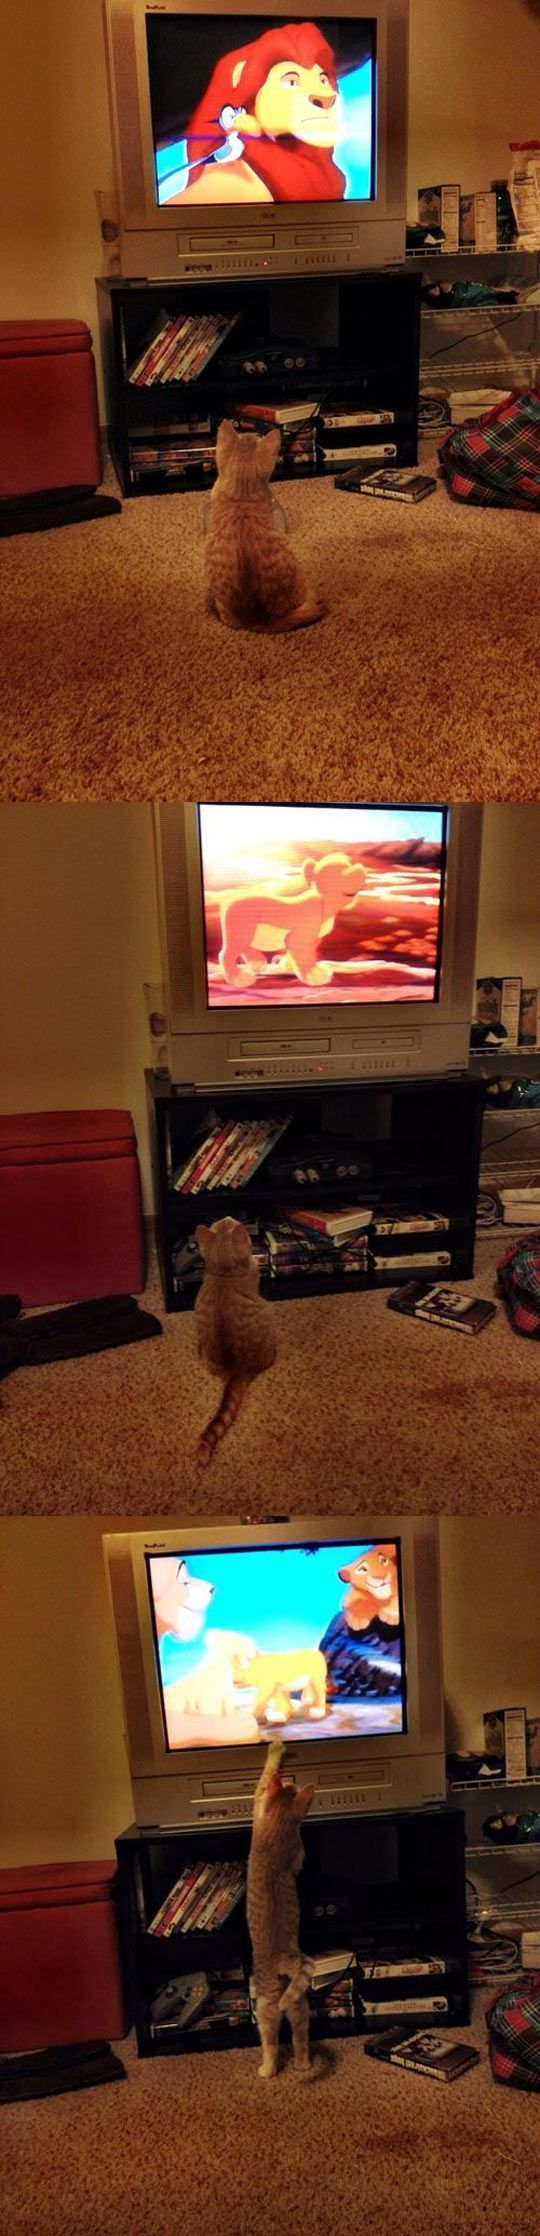 Everyone loves The Lion King…